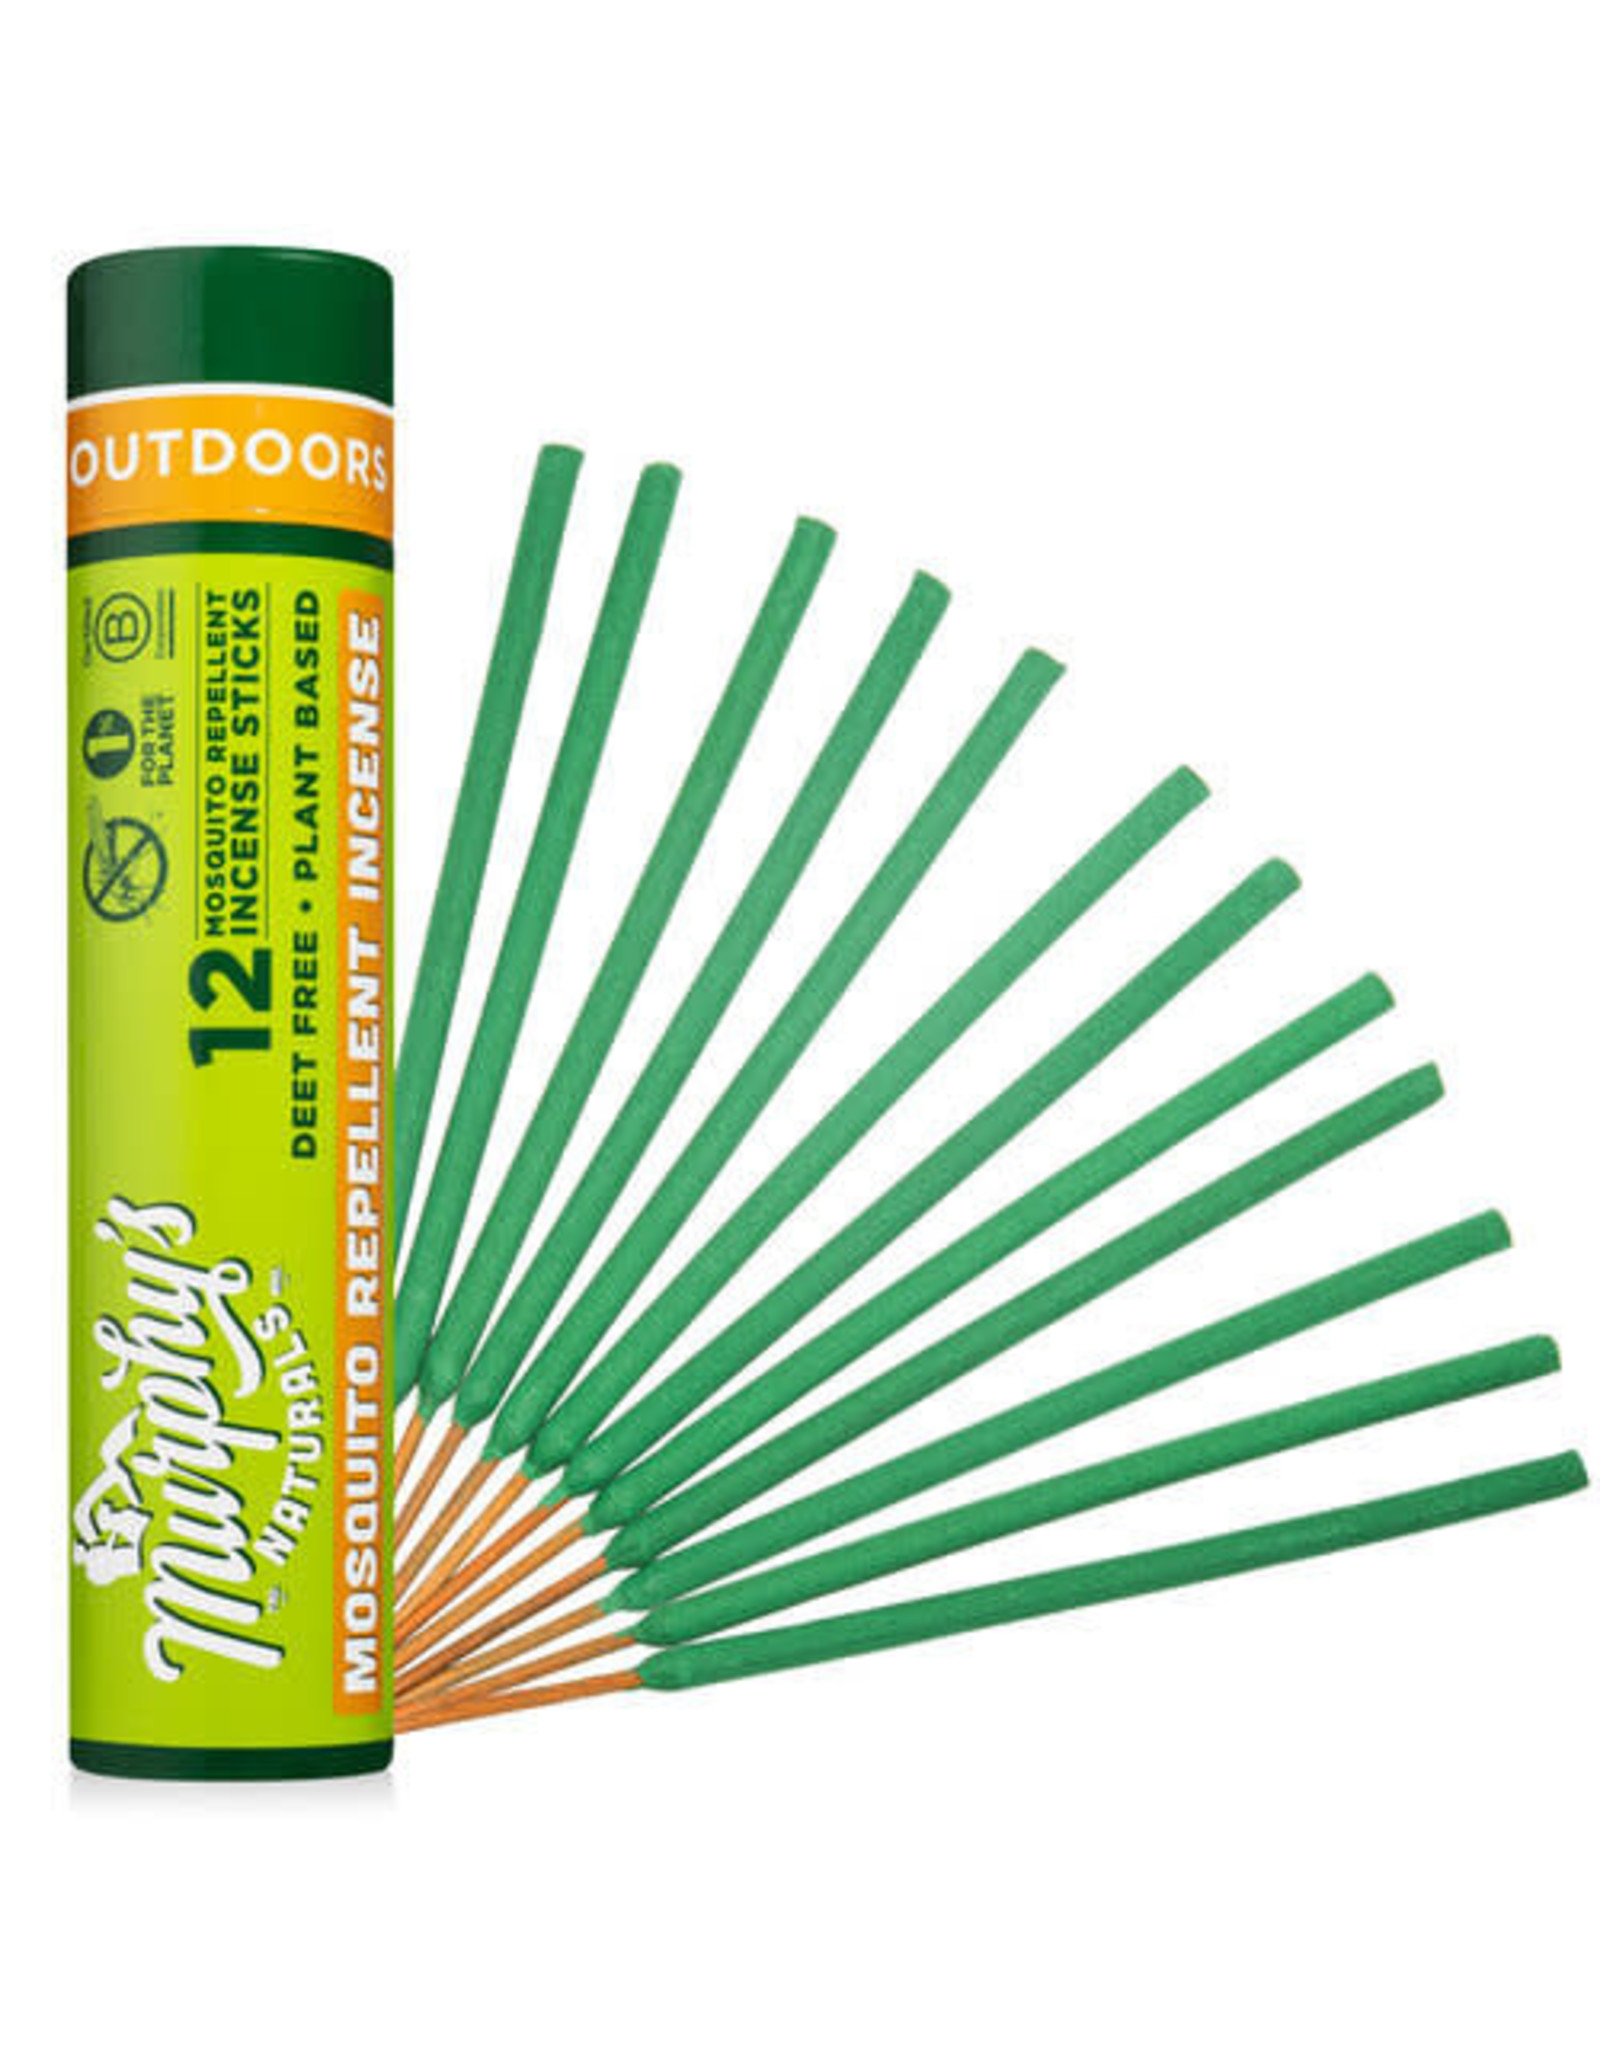 Murphy's Mosquito Incense Sticks - 12 Pack